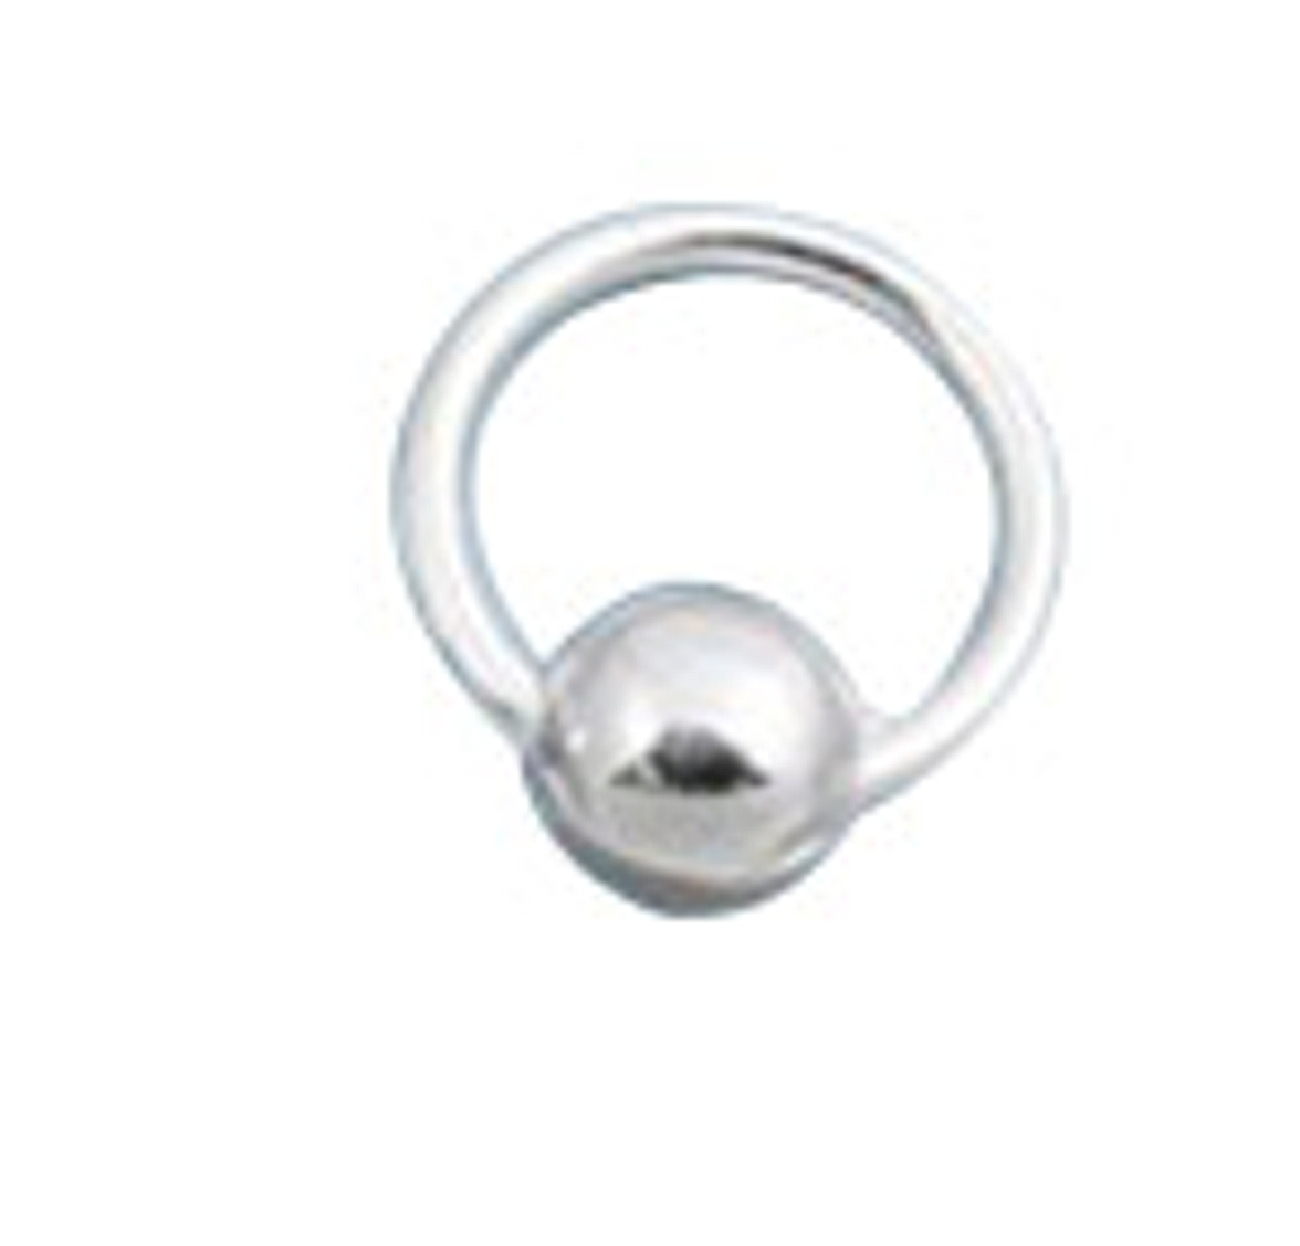 10mm Pierced Ball Charm Wire Band Nose Ring